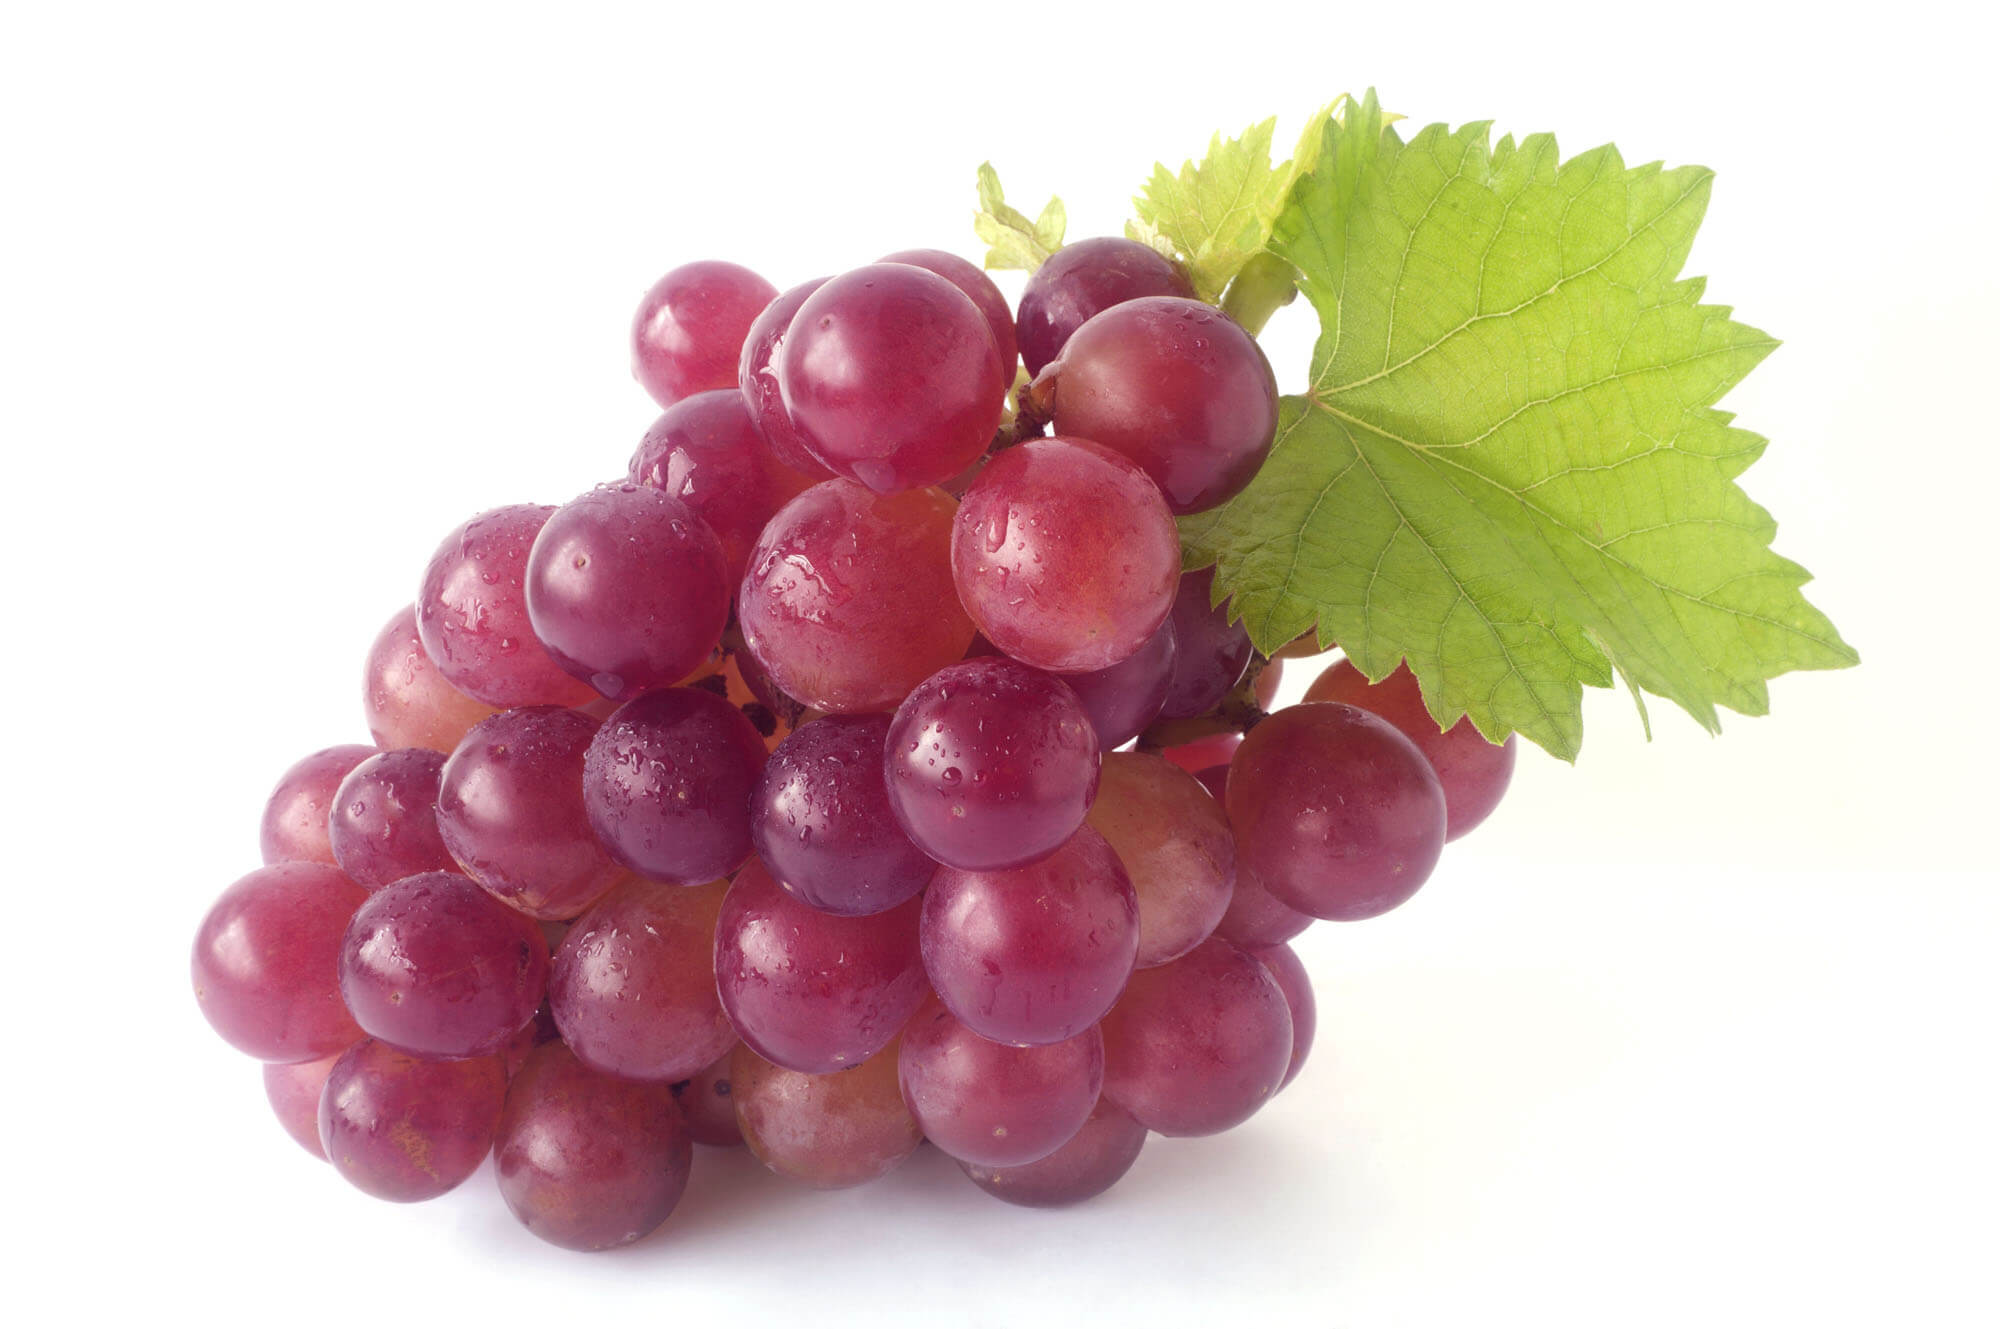 Eating grapes every day can be good if they are fresh red grapes